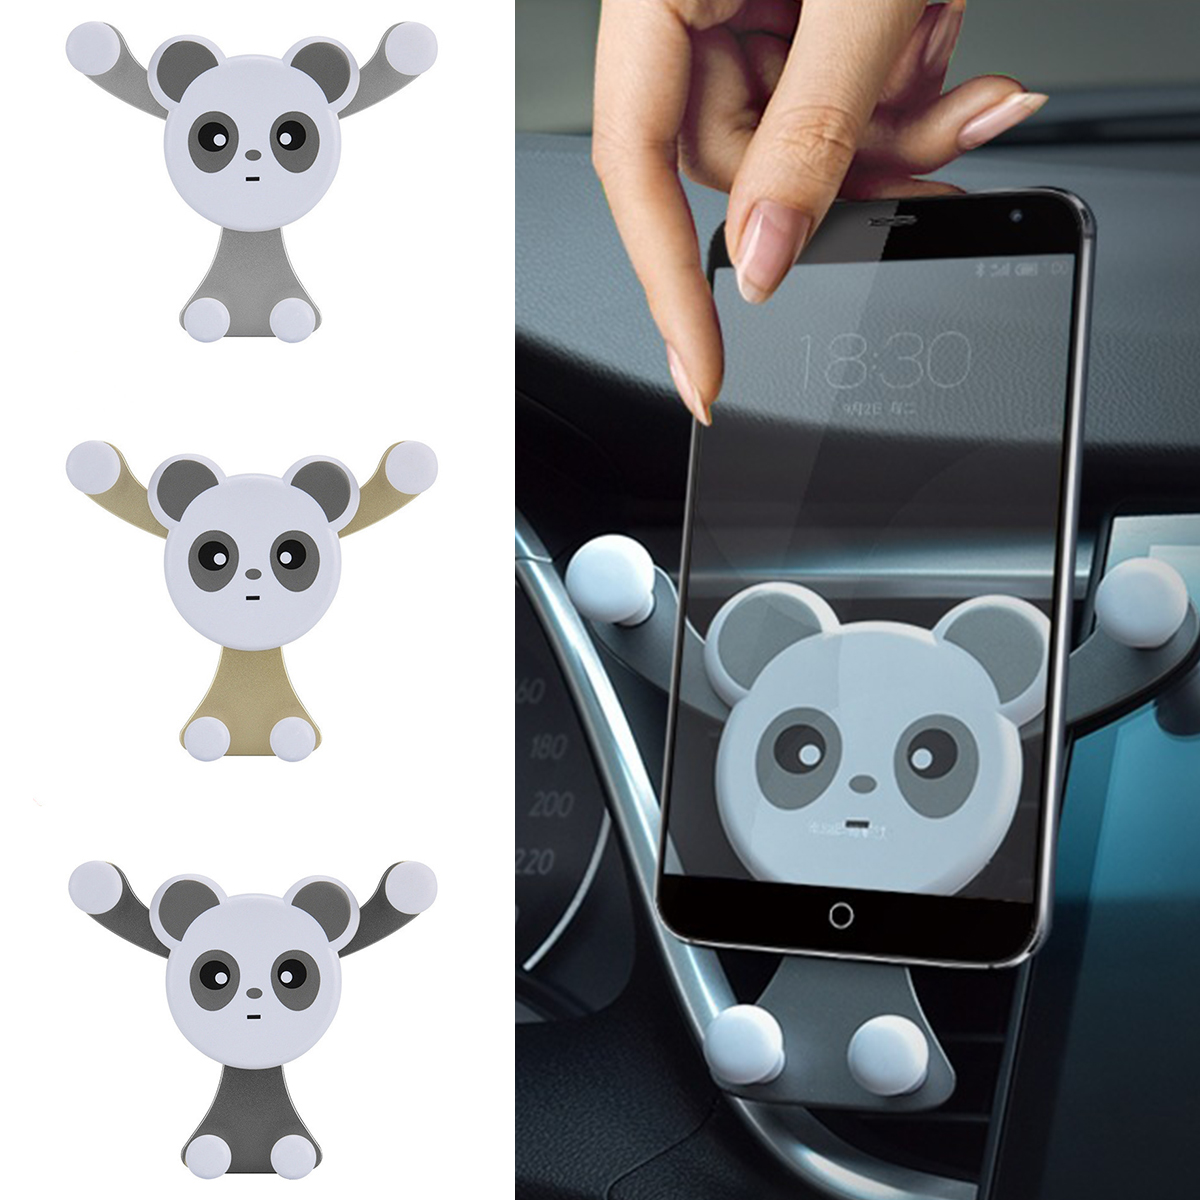 Automatic Tightening Phone Holders Car Air Vent Car Holder Accessories Smartphone Holder Mobile Phone Stand Universal